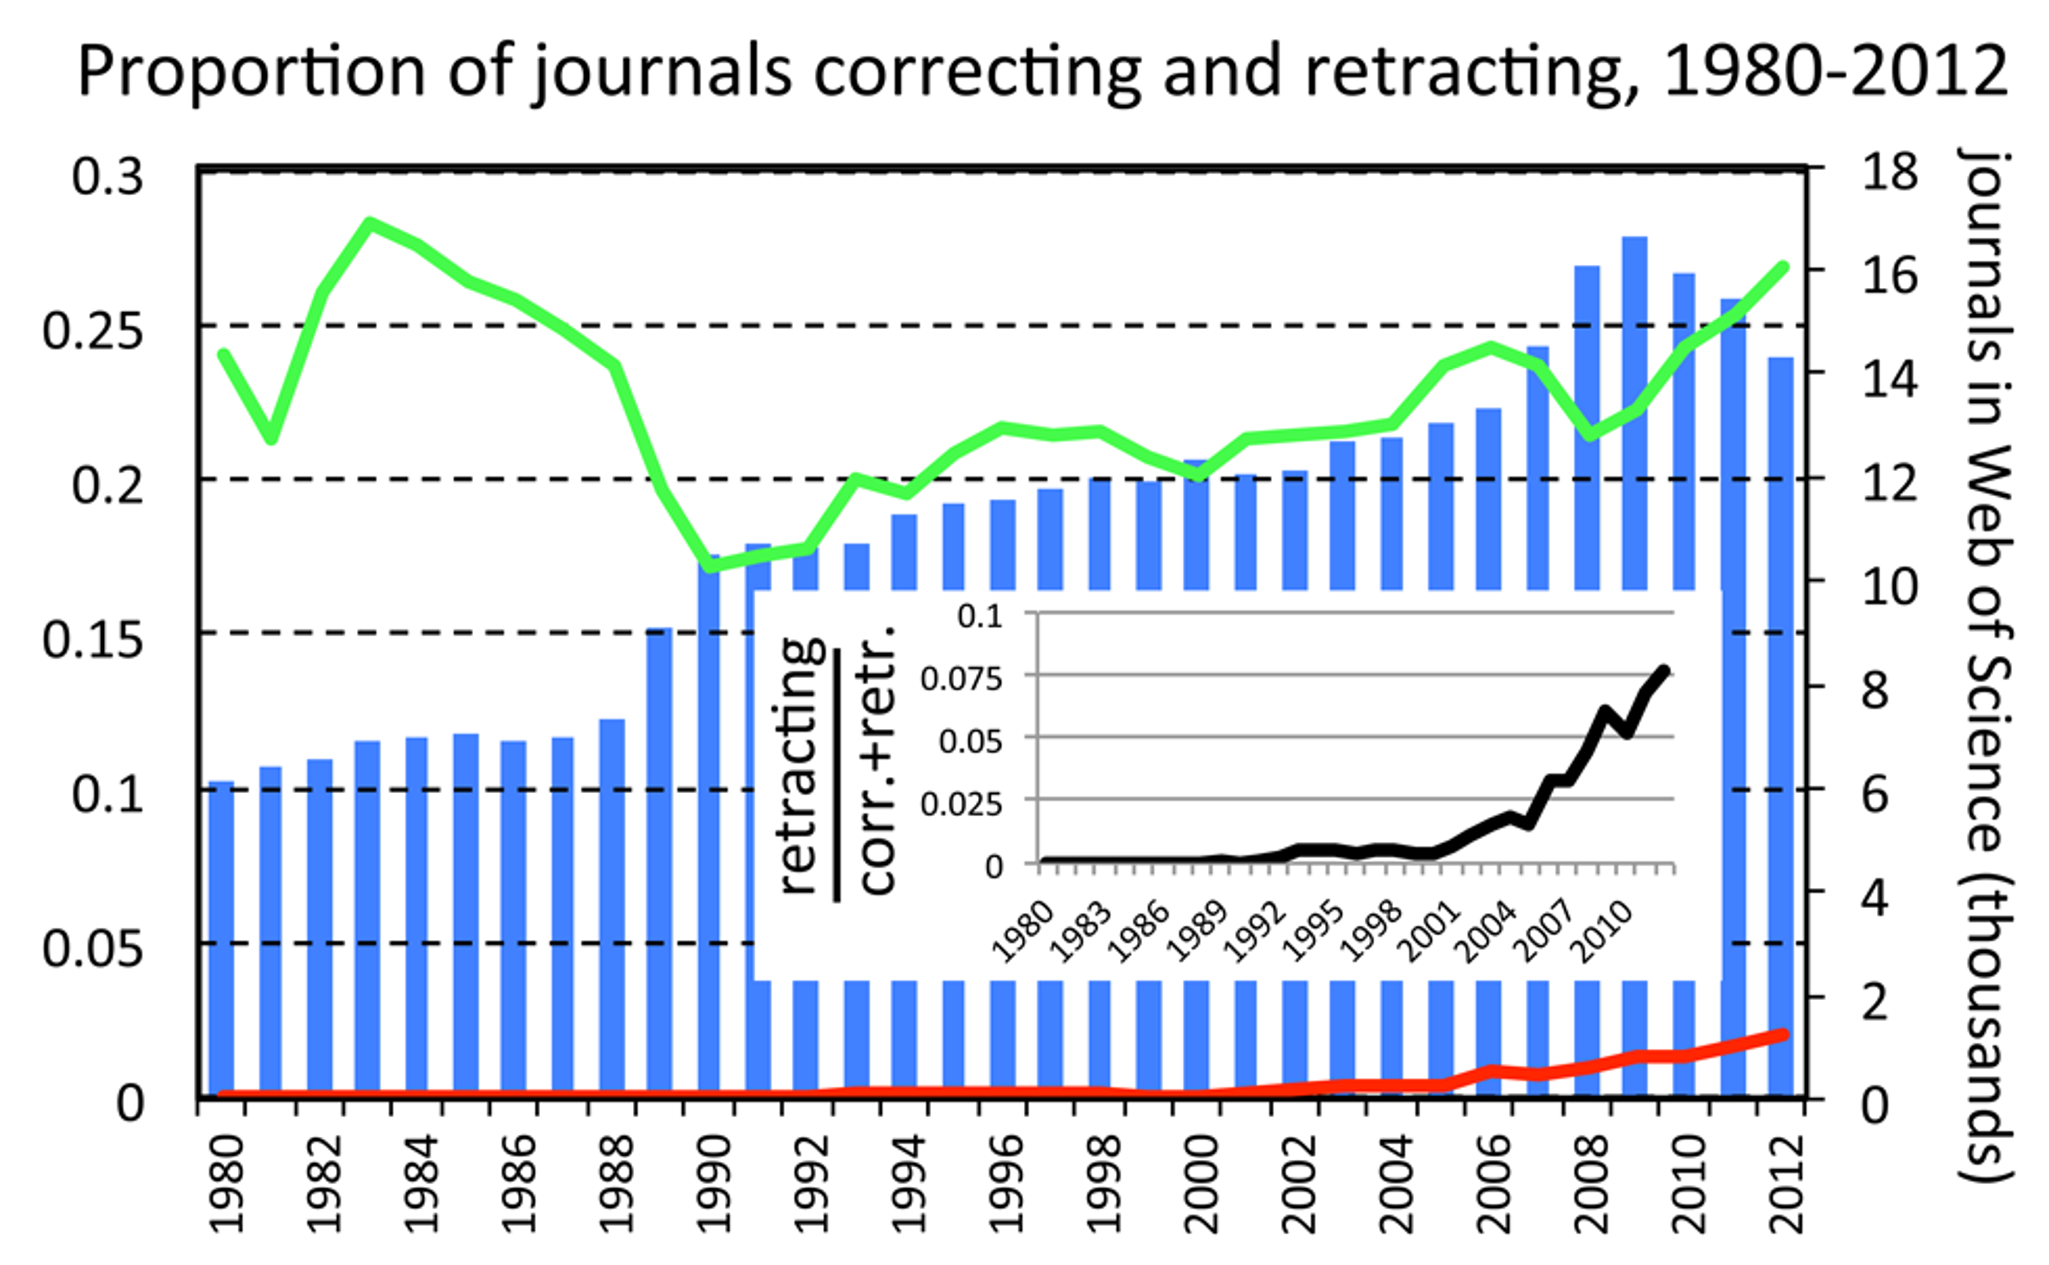 Proportion of journals issuing corrections or retractions amongst all journals covered by the Web of Science database, by year.